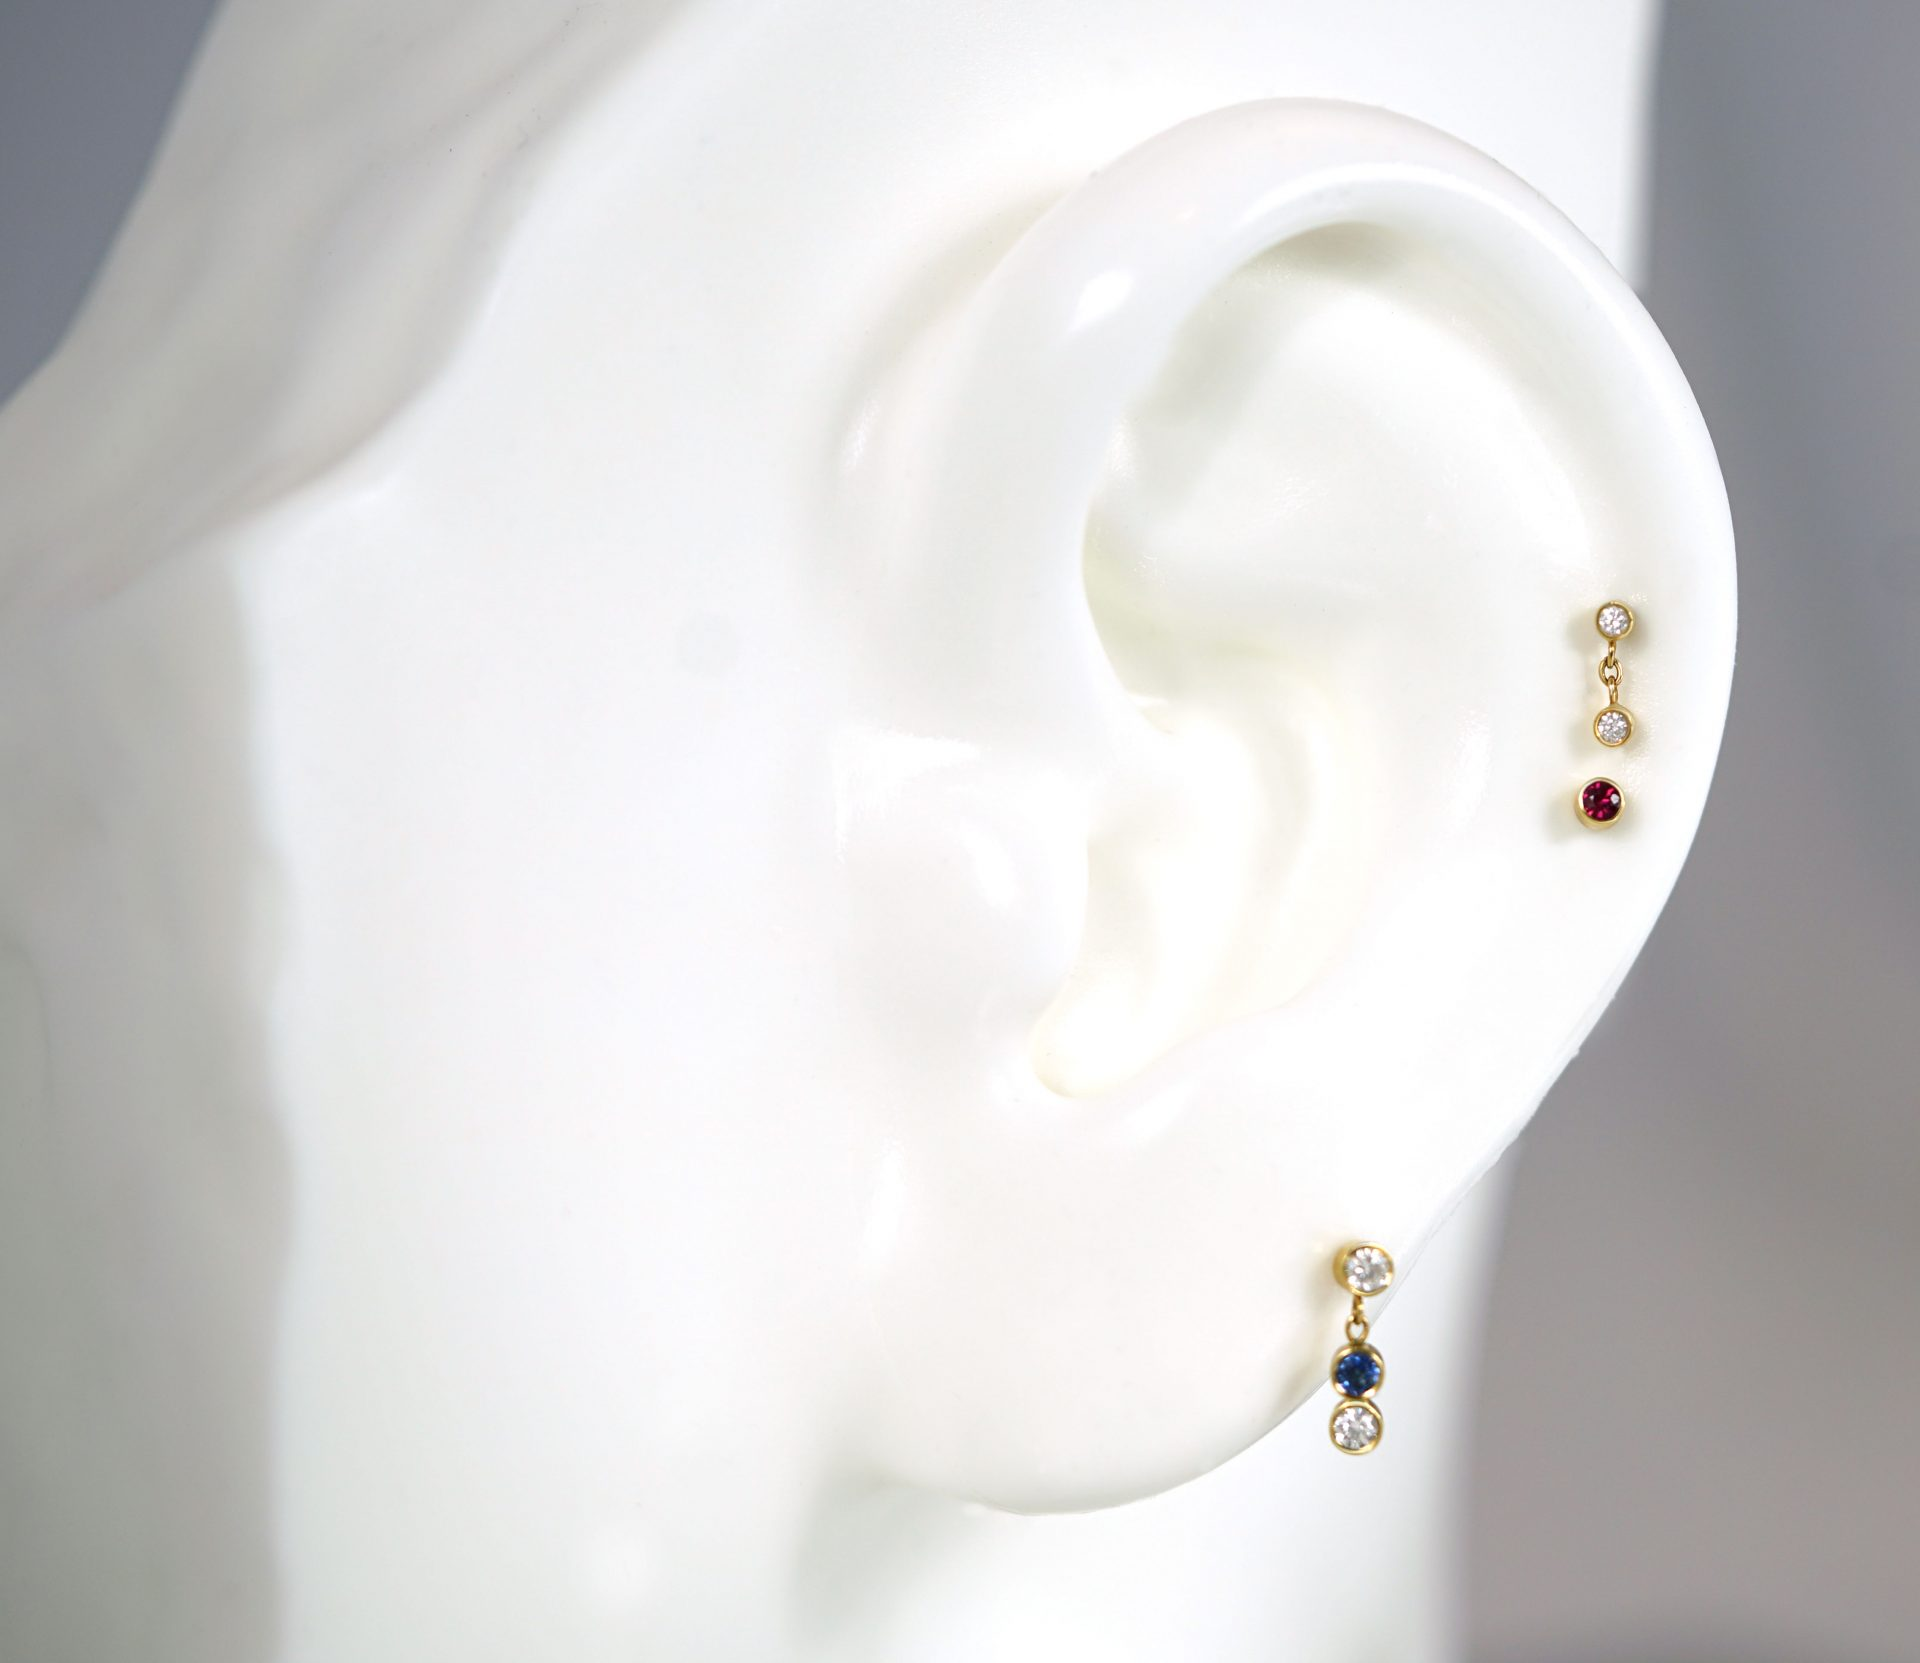 Multi-Buy-Option-for-18k-Gold-Handcrafted-Luxury-Piercing-Earrings–Buy-as-a-set-for-the-best-price